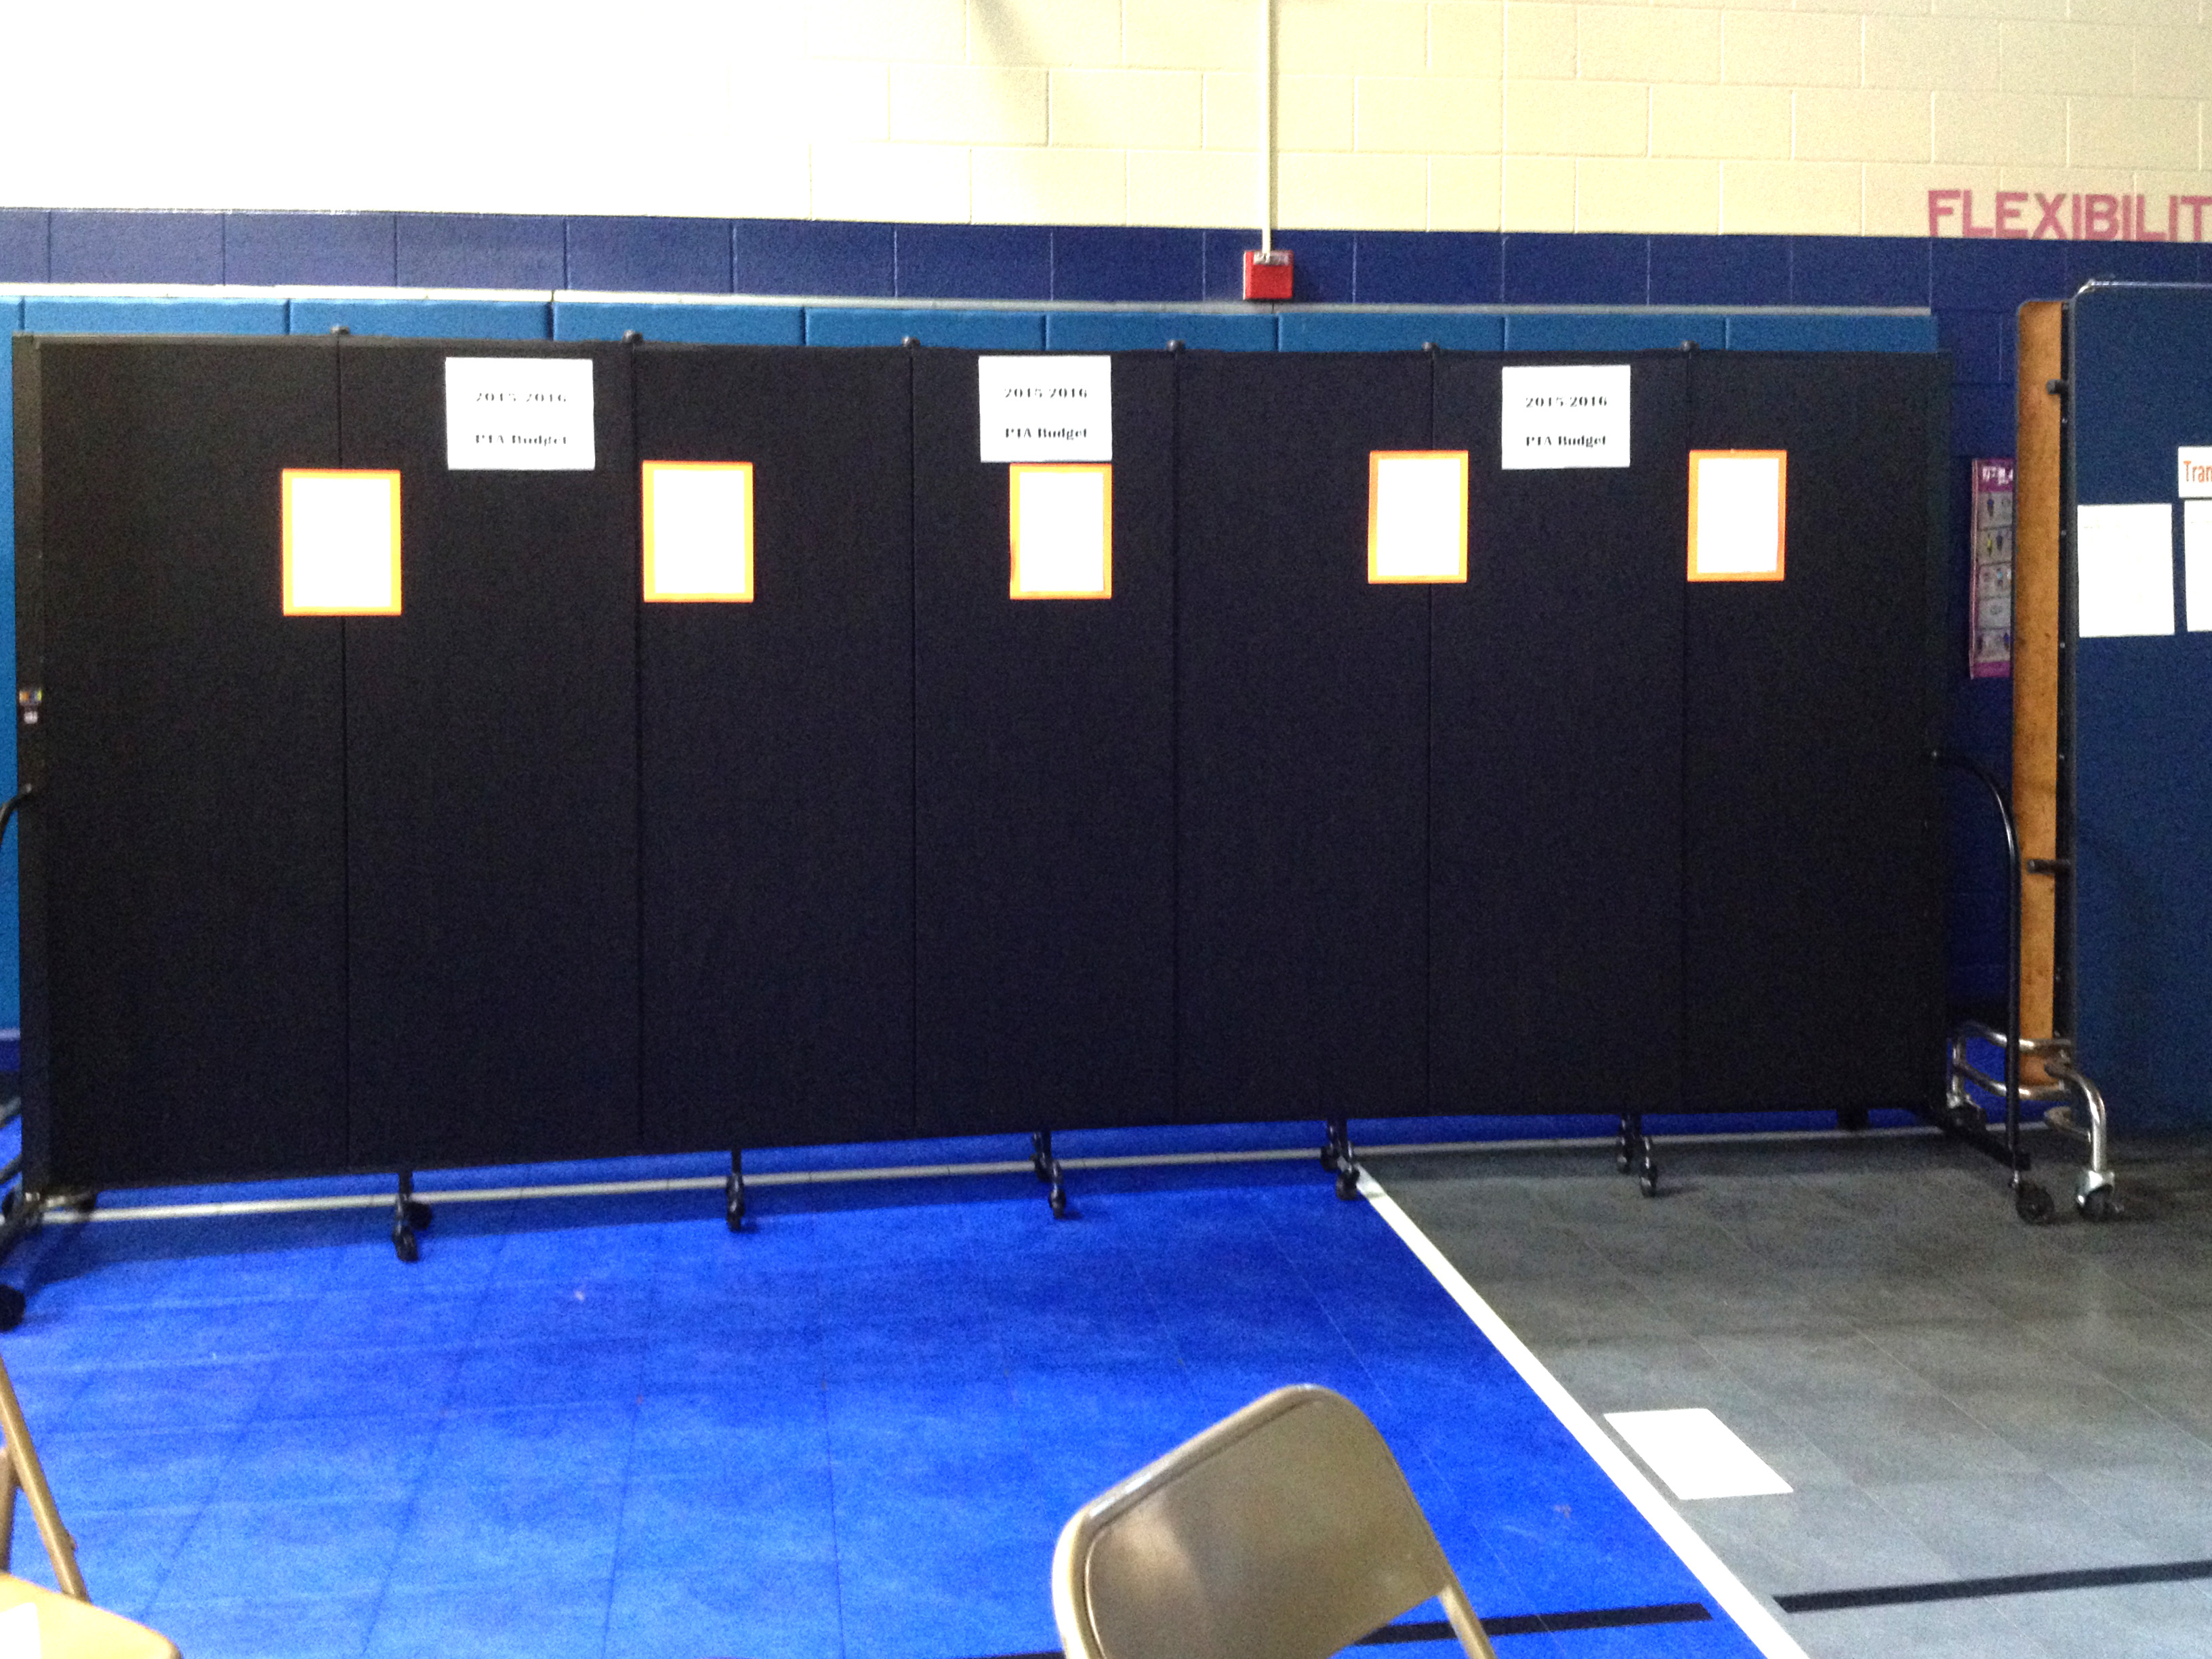 School testimony on how they use room dividers as display boards